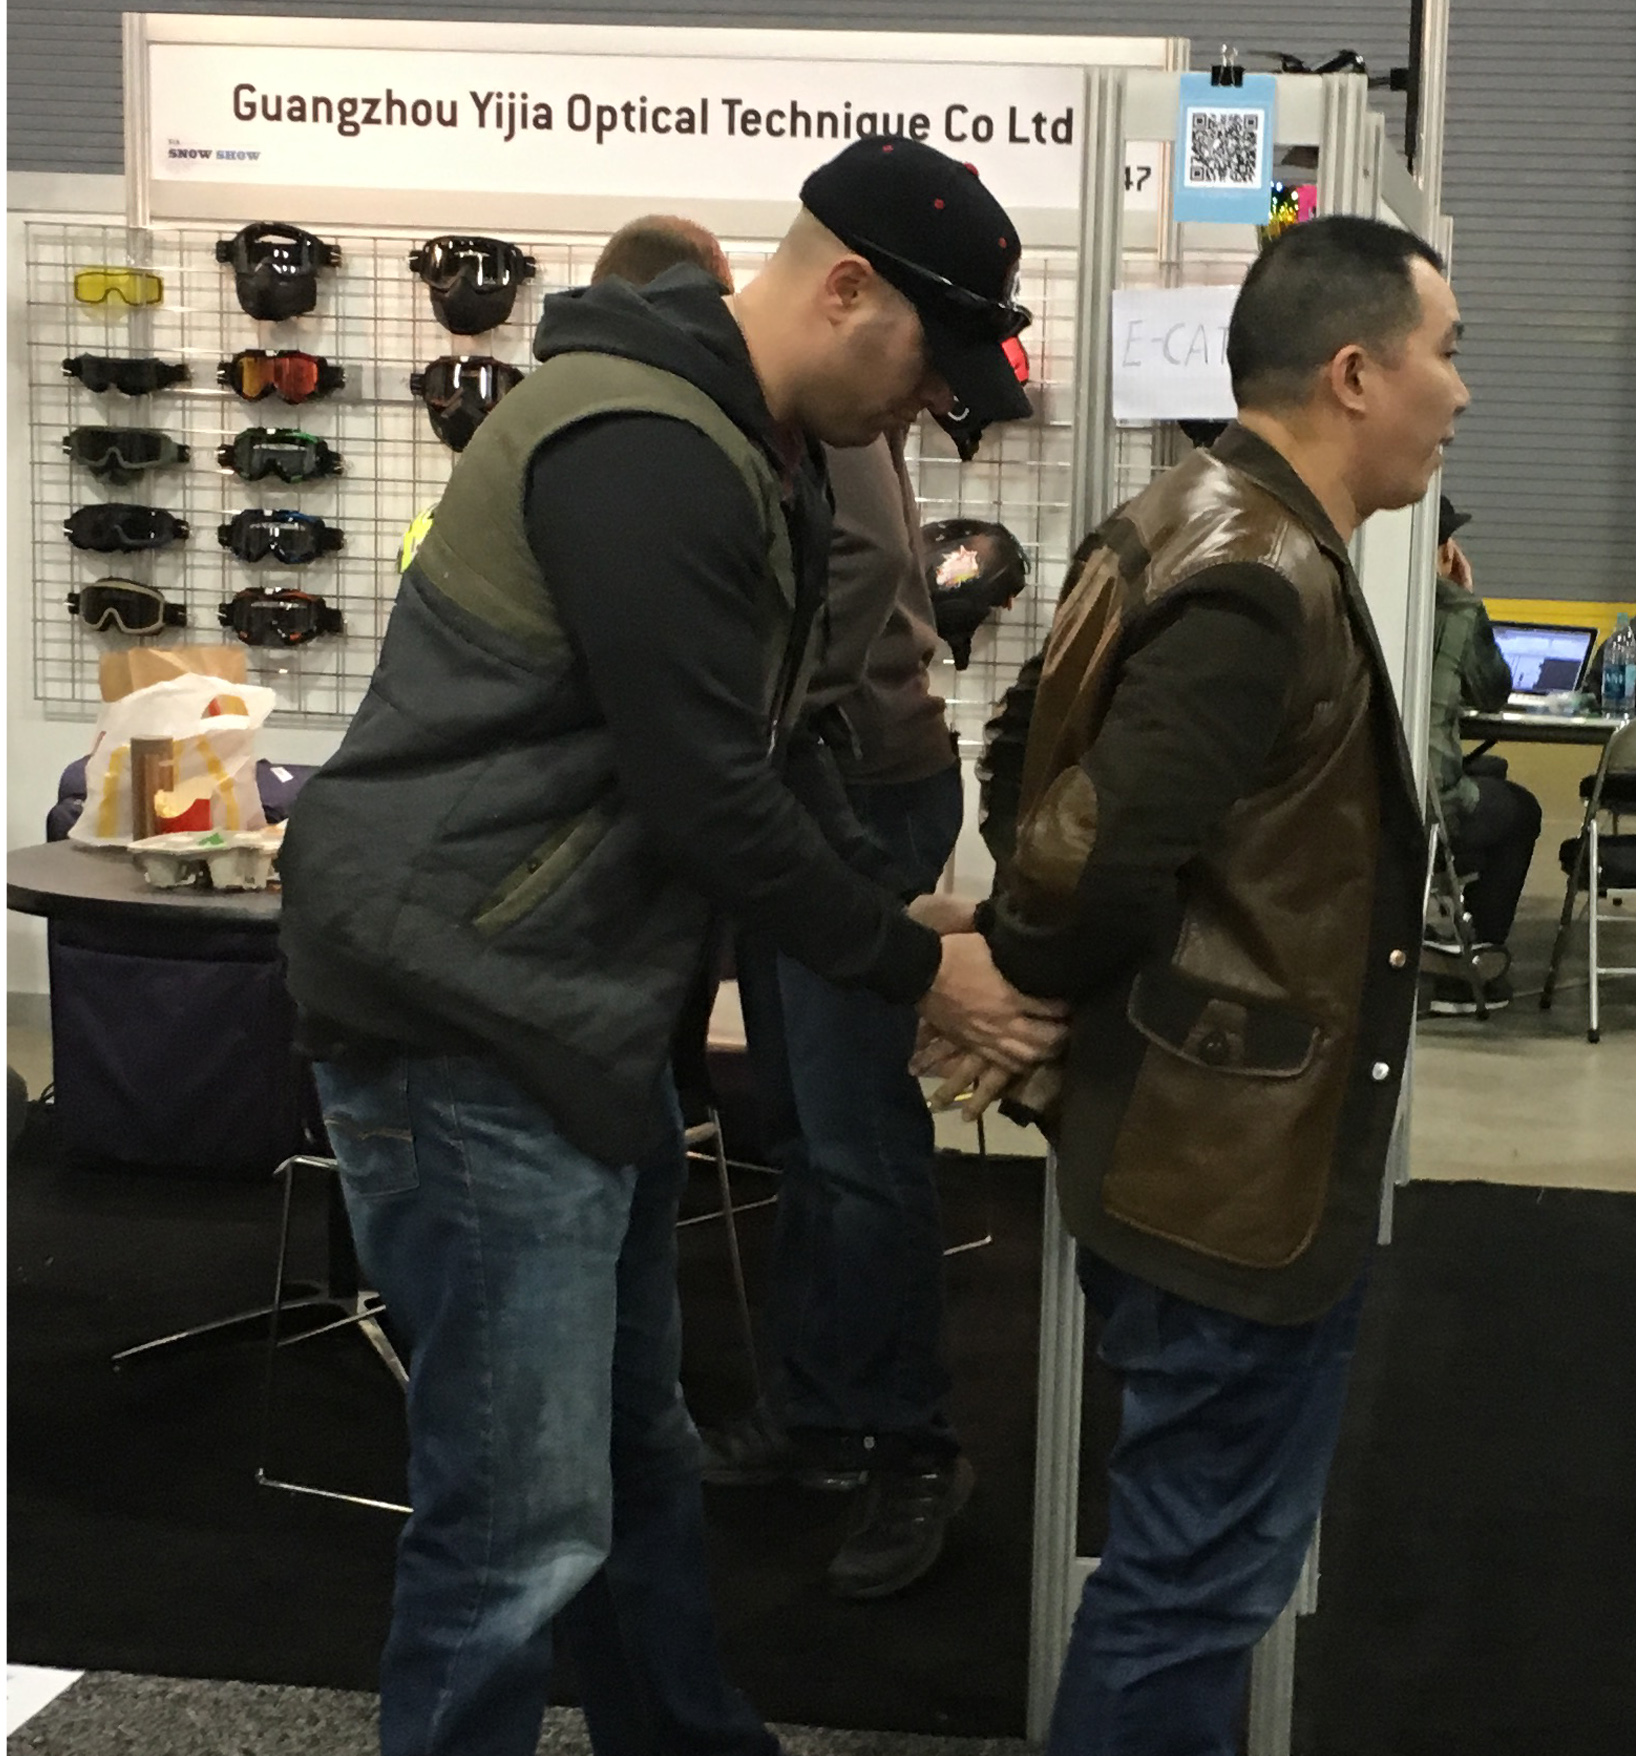 Revision Aids in Counterfeit Sting Operations at Two Tradeshows, Resulting in Multiple Arrests